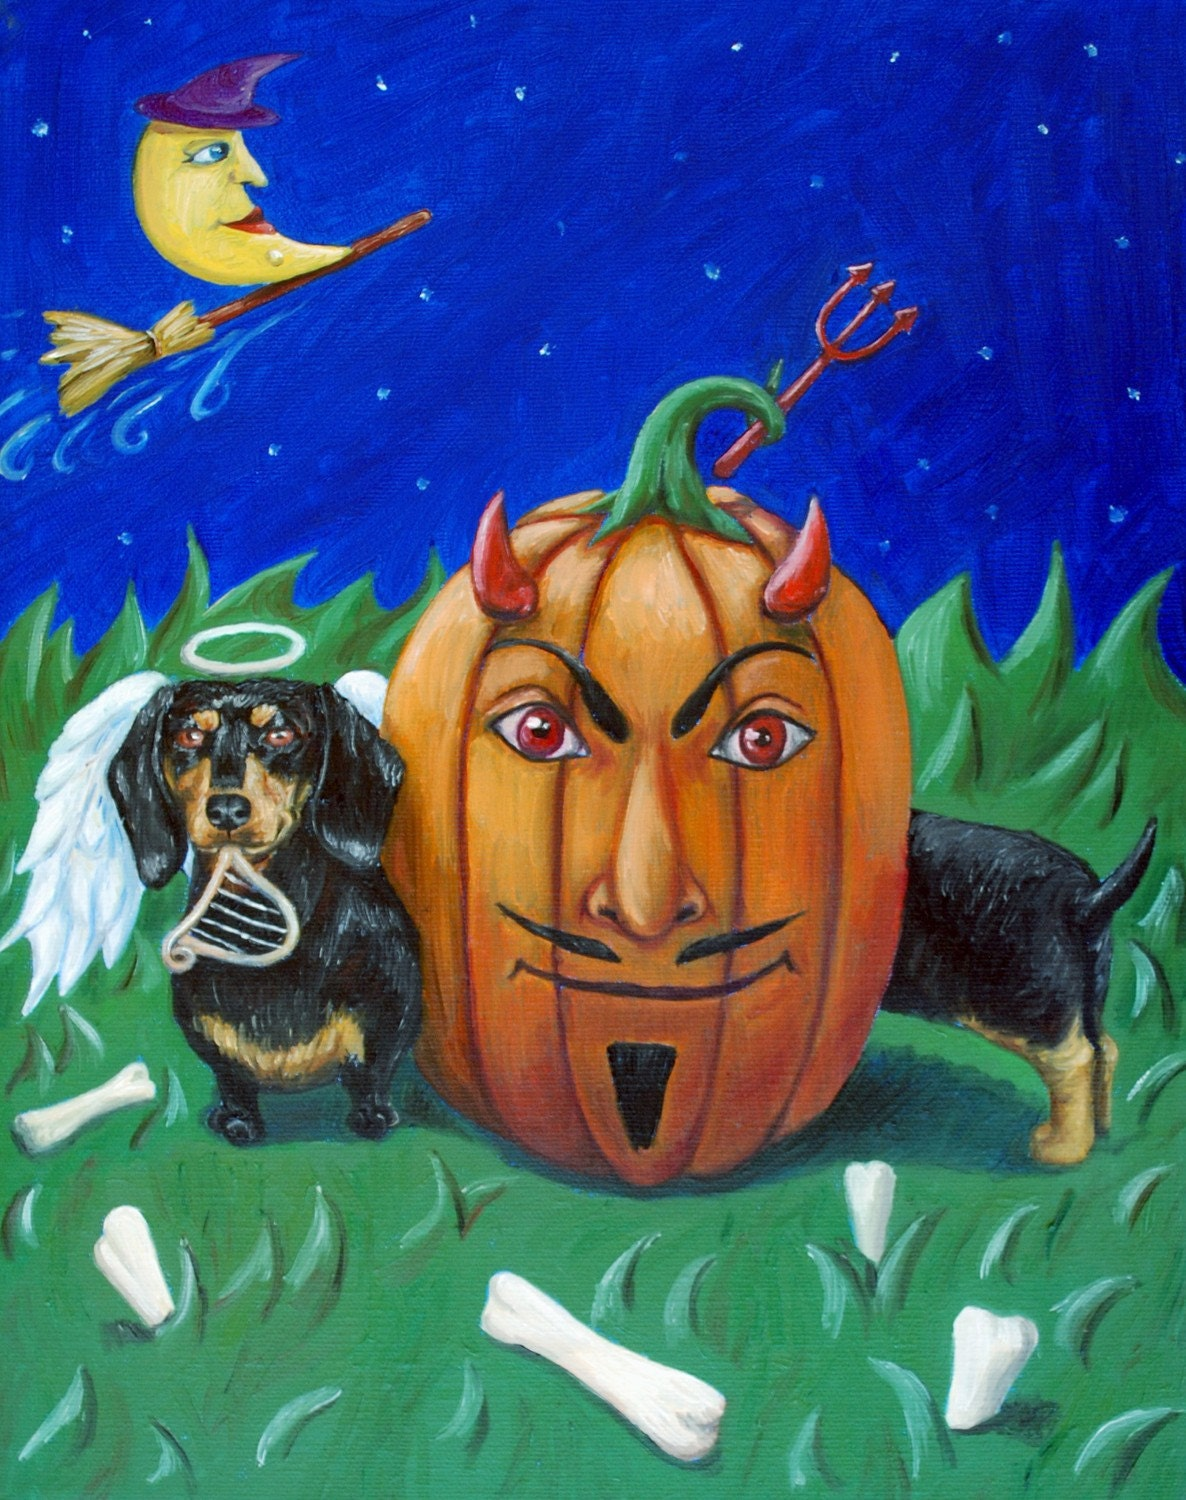 Halloween Dachshund Painting (FREE SHIPPING) - RebeccaTiano